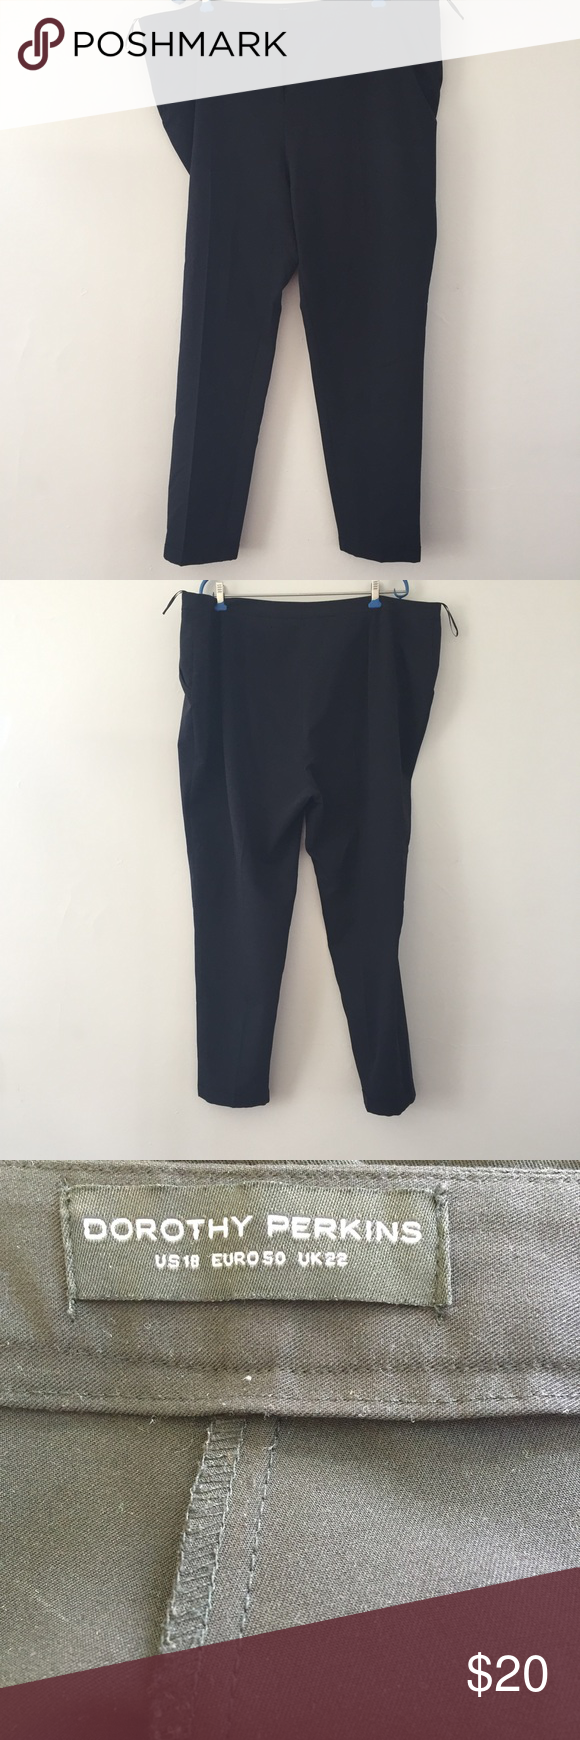 """Black Skinny Leg Work Pants Simple black trouser ankle pants perfect for the office. Dorothy Perkins size 18. Laid flat, waist measures 21"""", 28"""" inseam. In great condition. Dorothy Perkins Pants Skinny"""